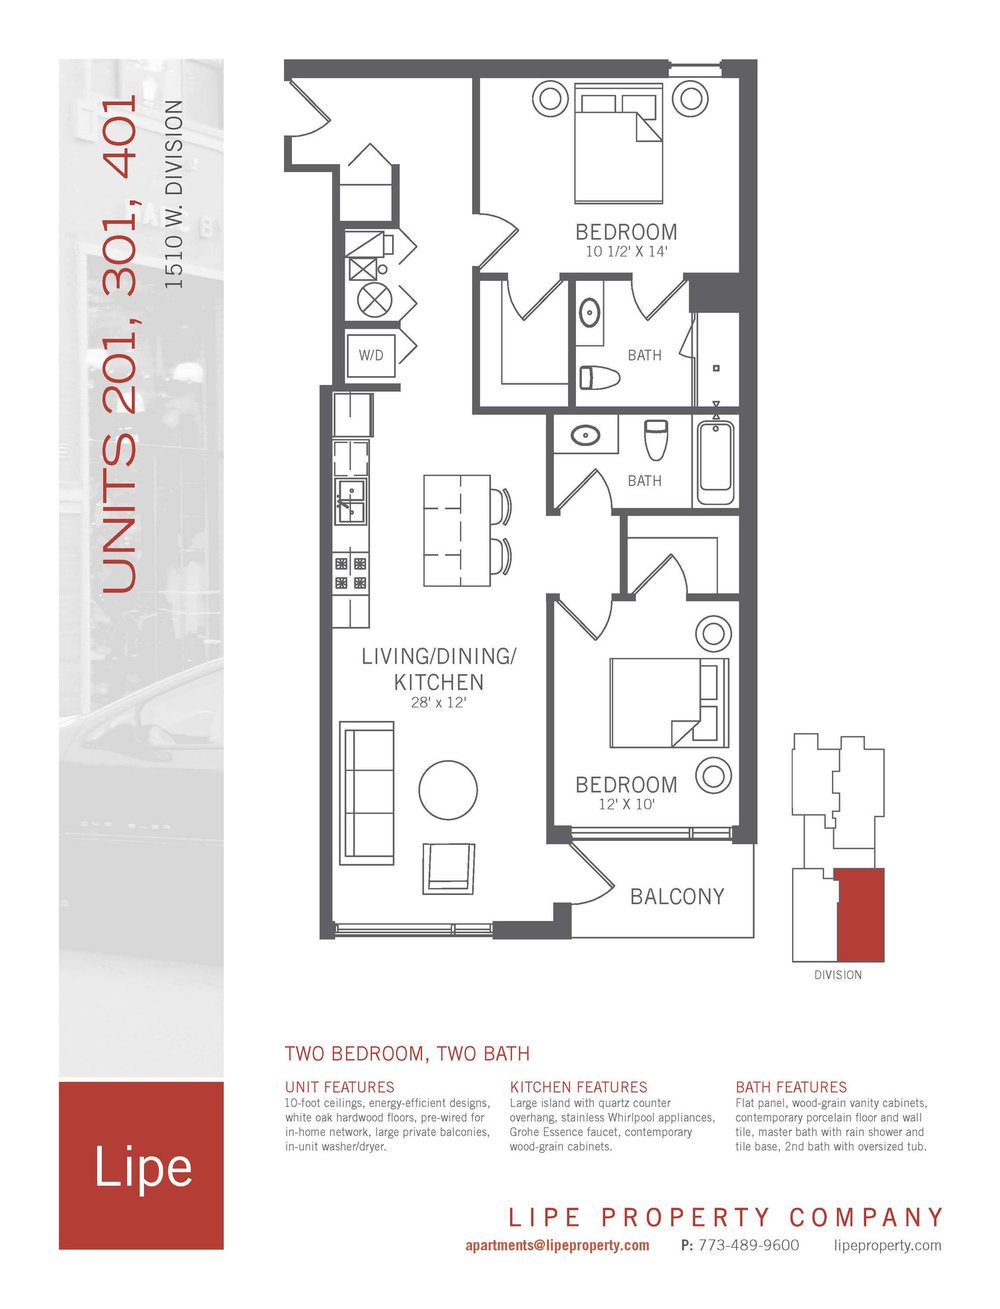 apartment-for-rent-1510-W-Division-Chicago-201,301,401-Floor-Plan.jpg